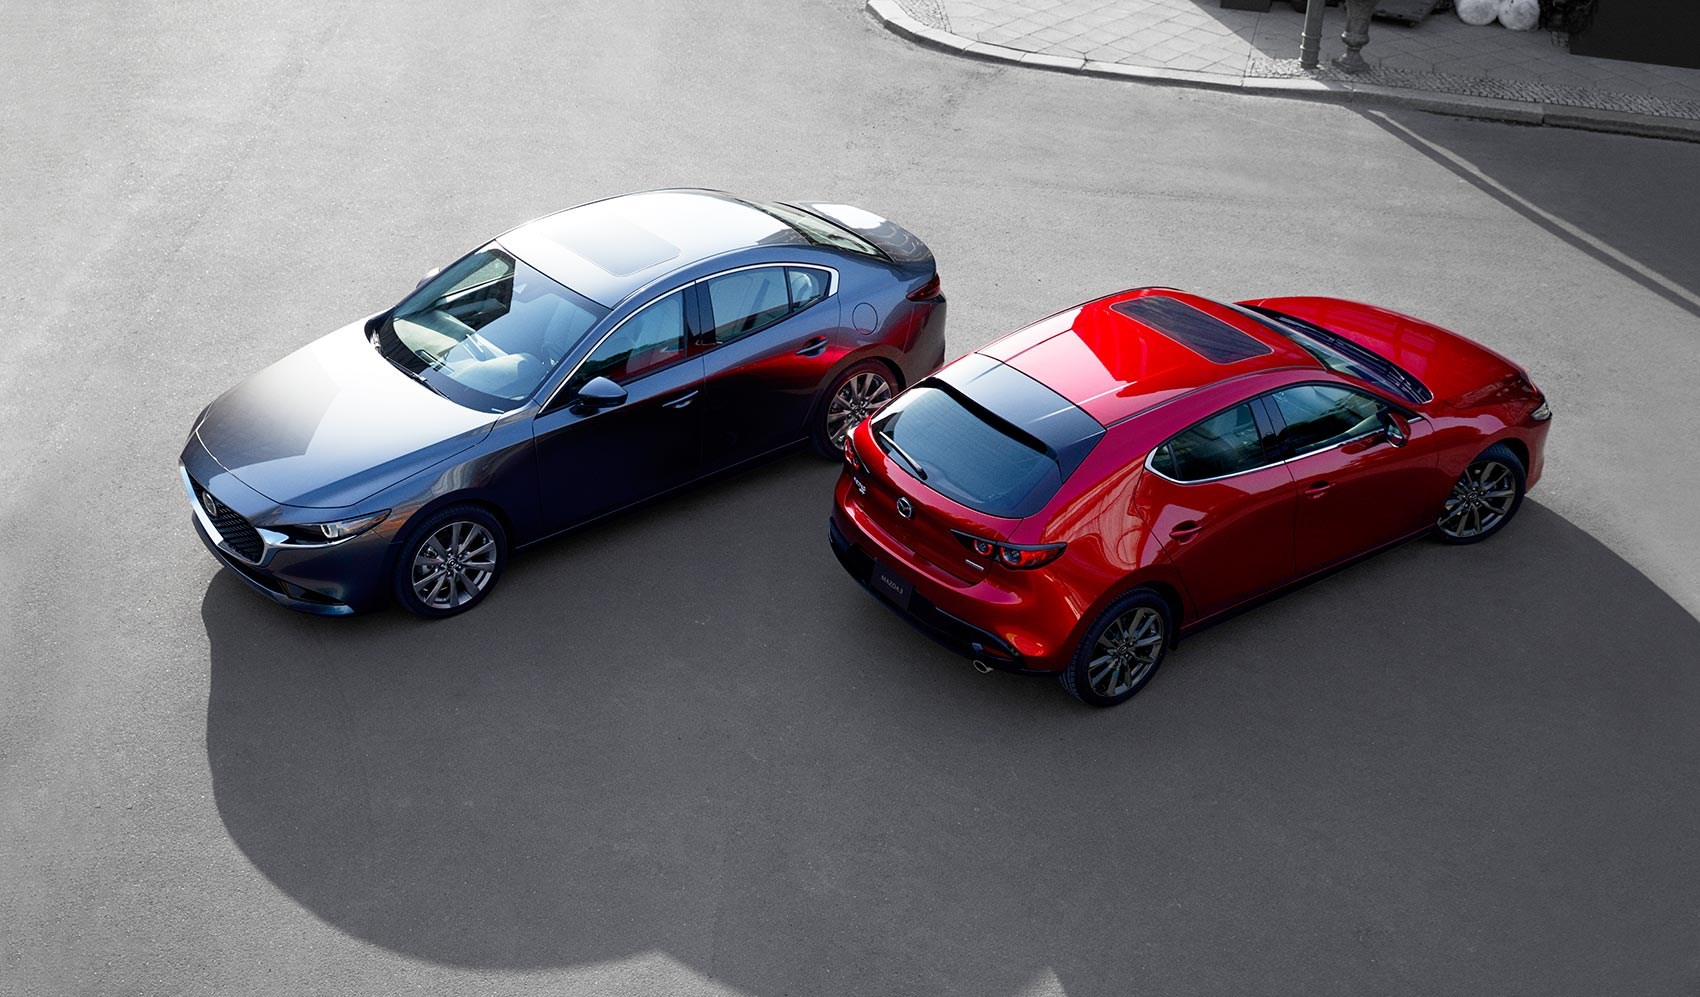 new 2019 mazda 3 news and pictures | car magazine